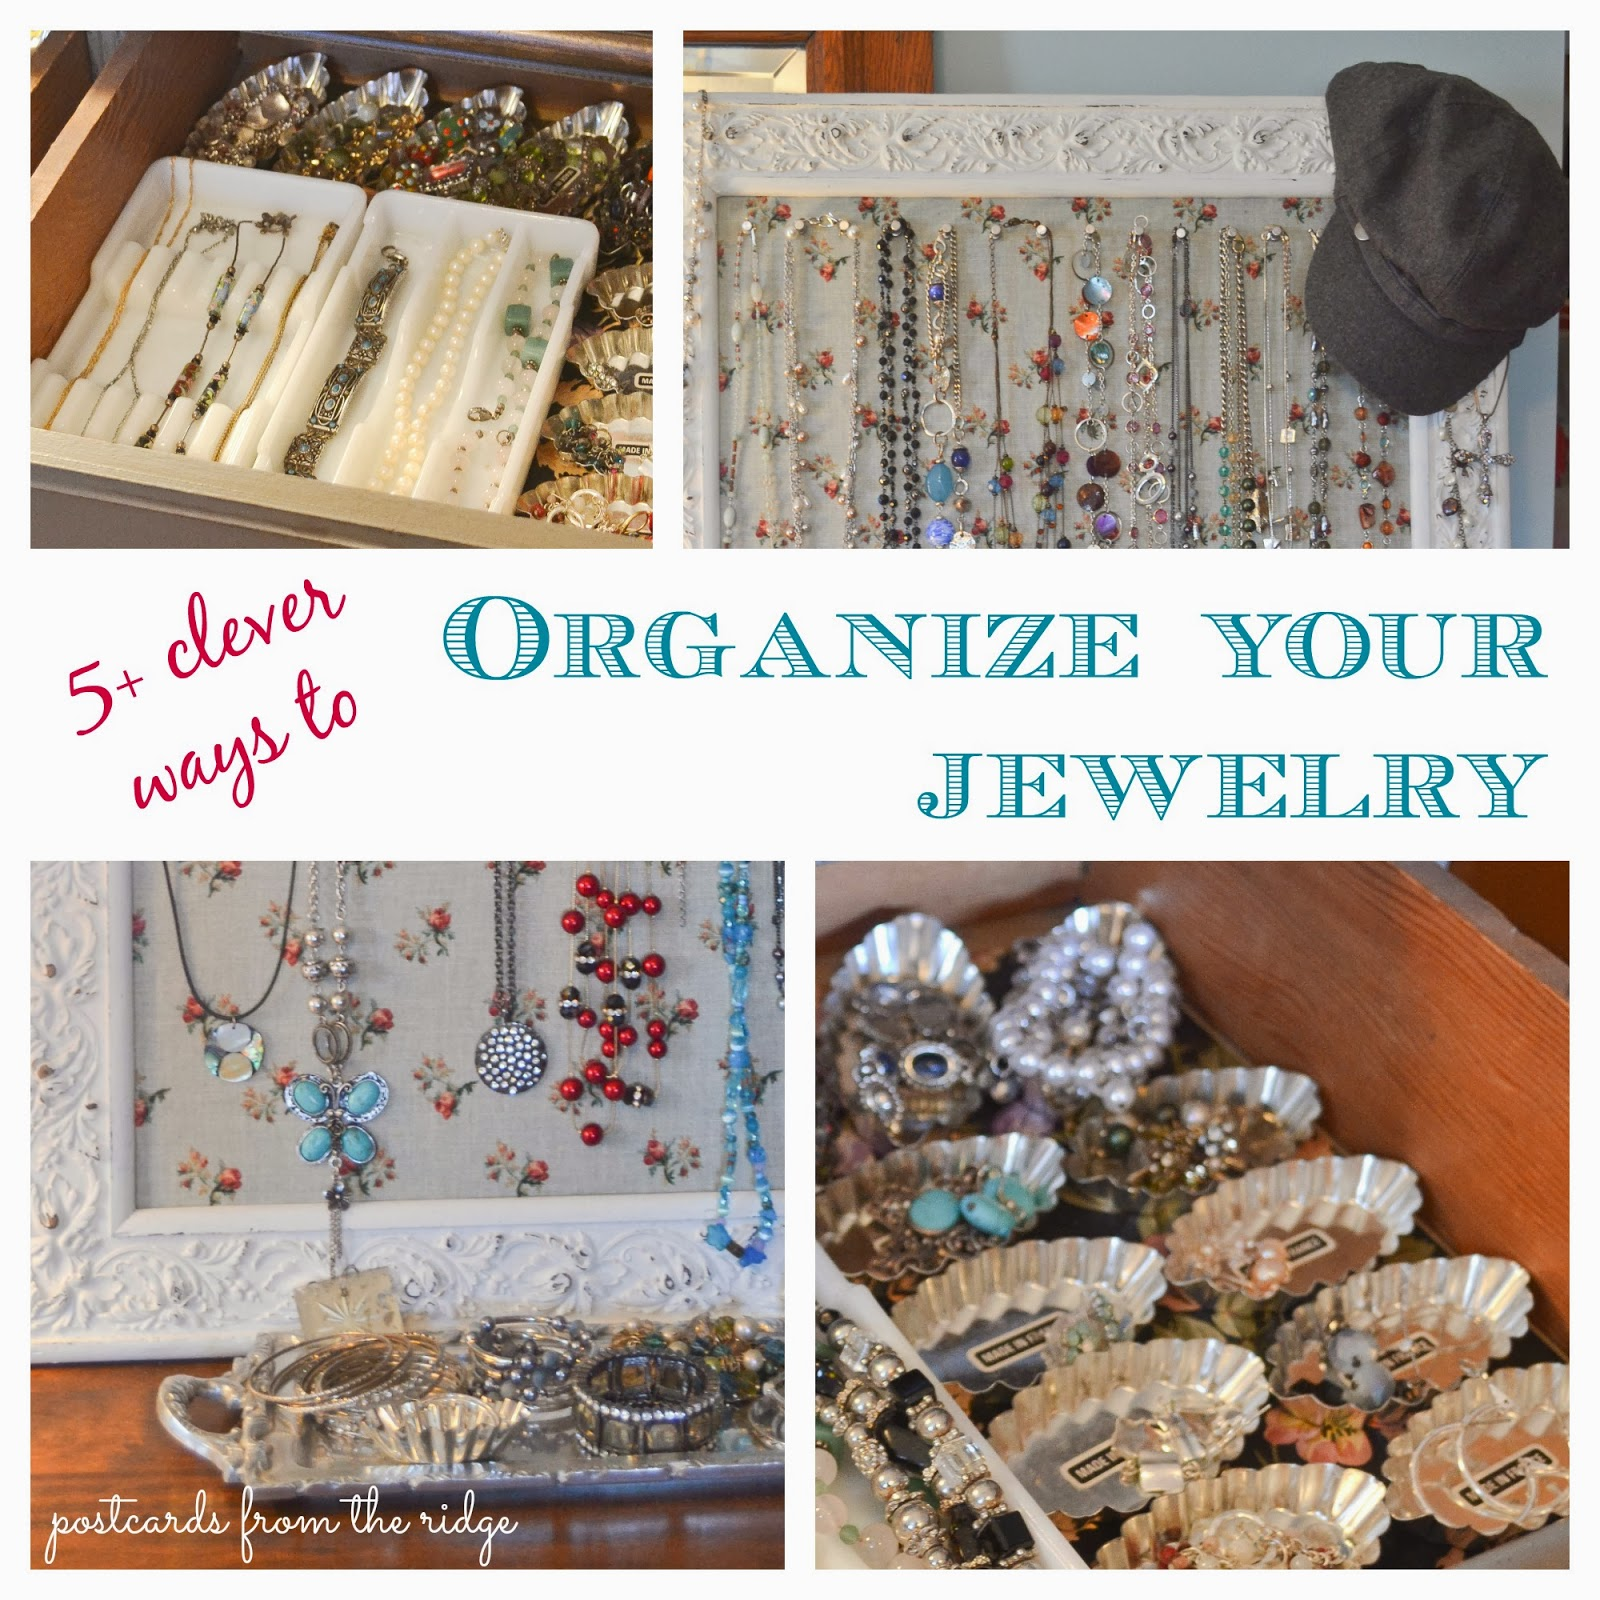 How clever!  Different vintage items repurposed for jewelry organization.  Love it.